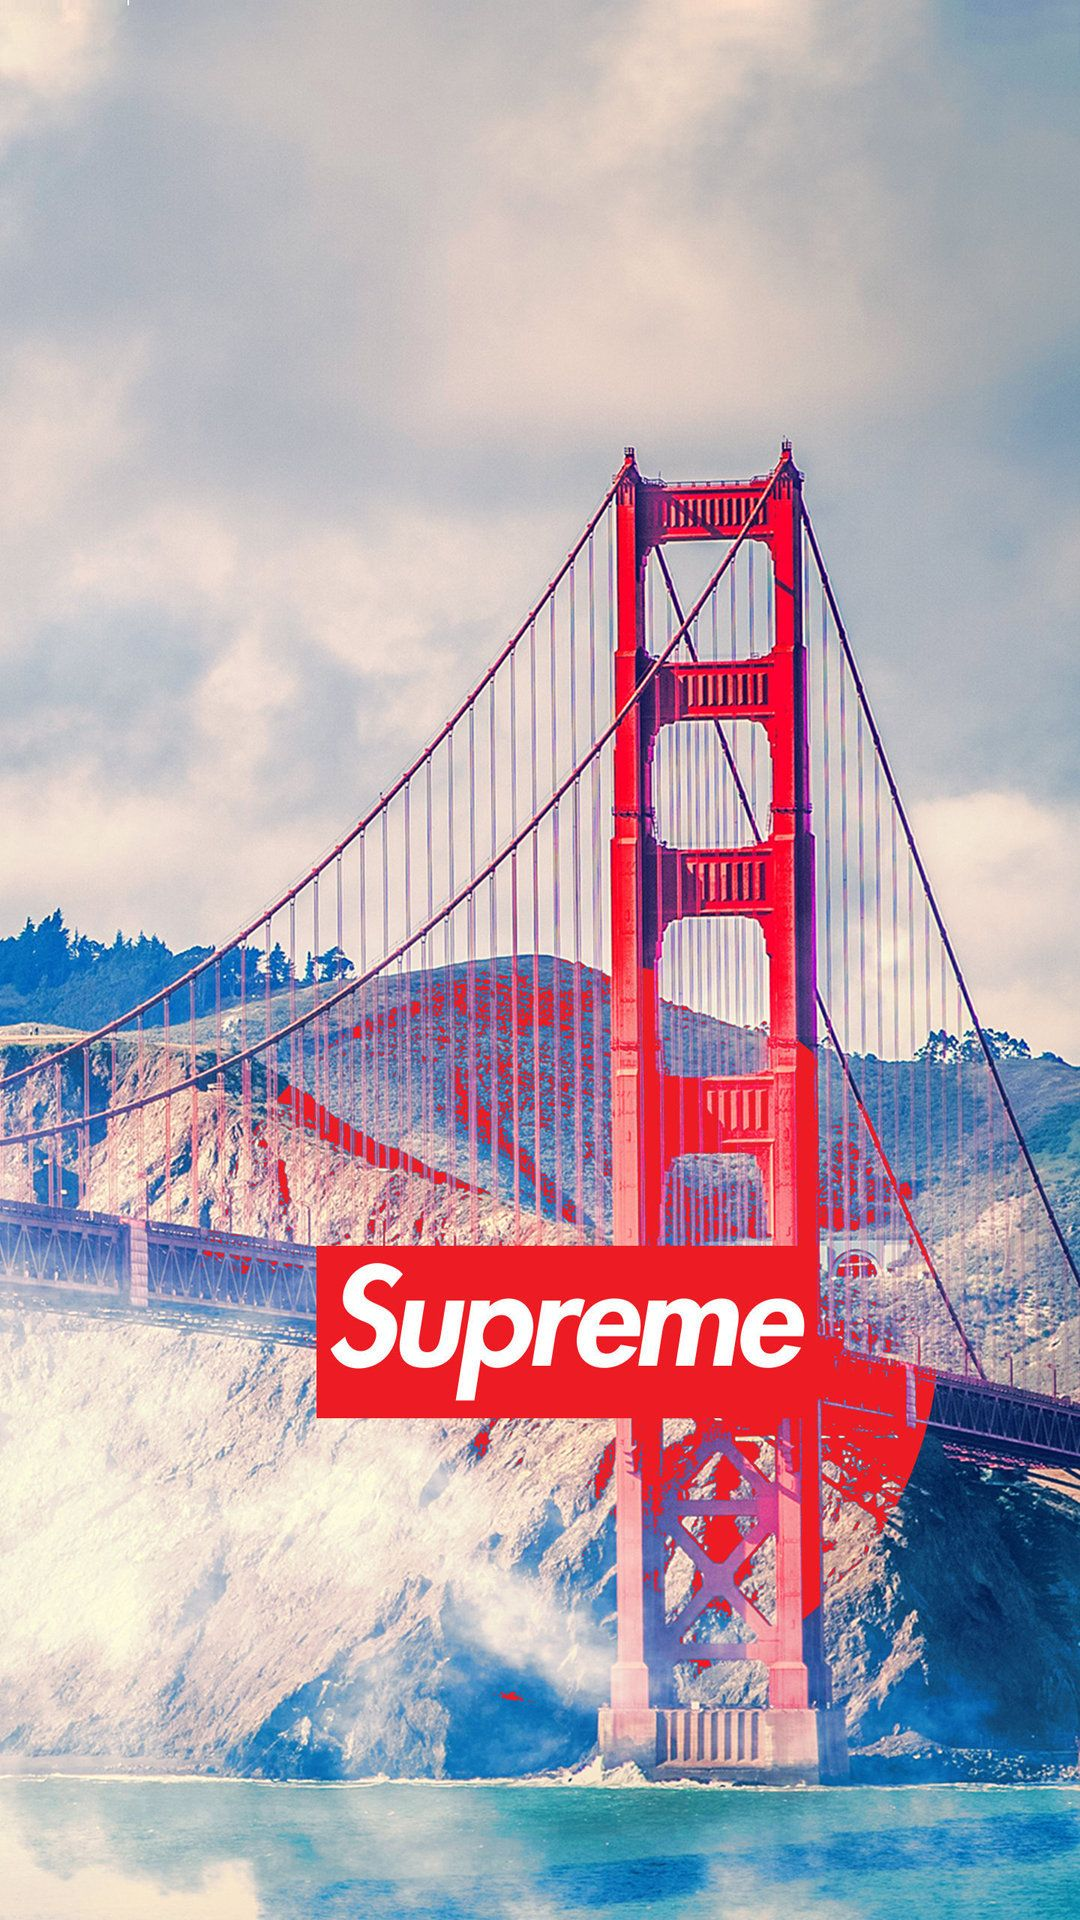 San Francisco Supreme - Tap To See More Of The Supreme -4285